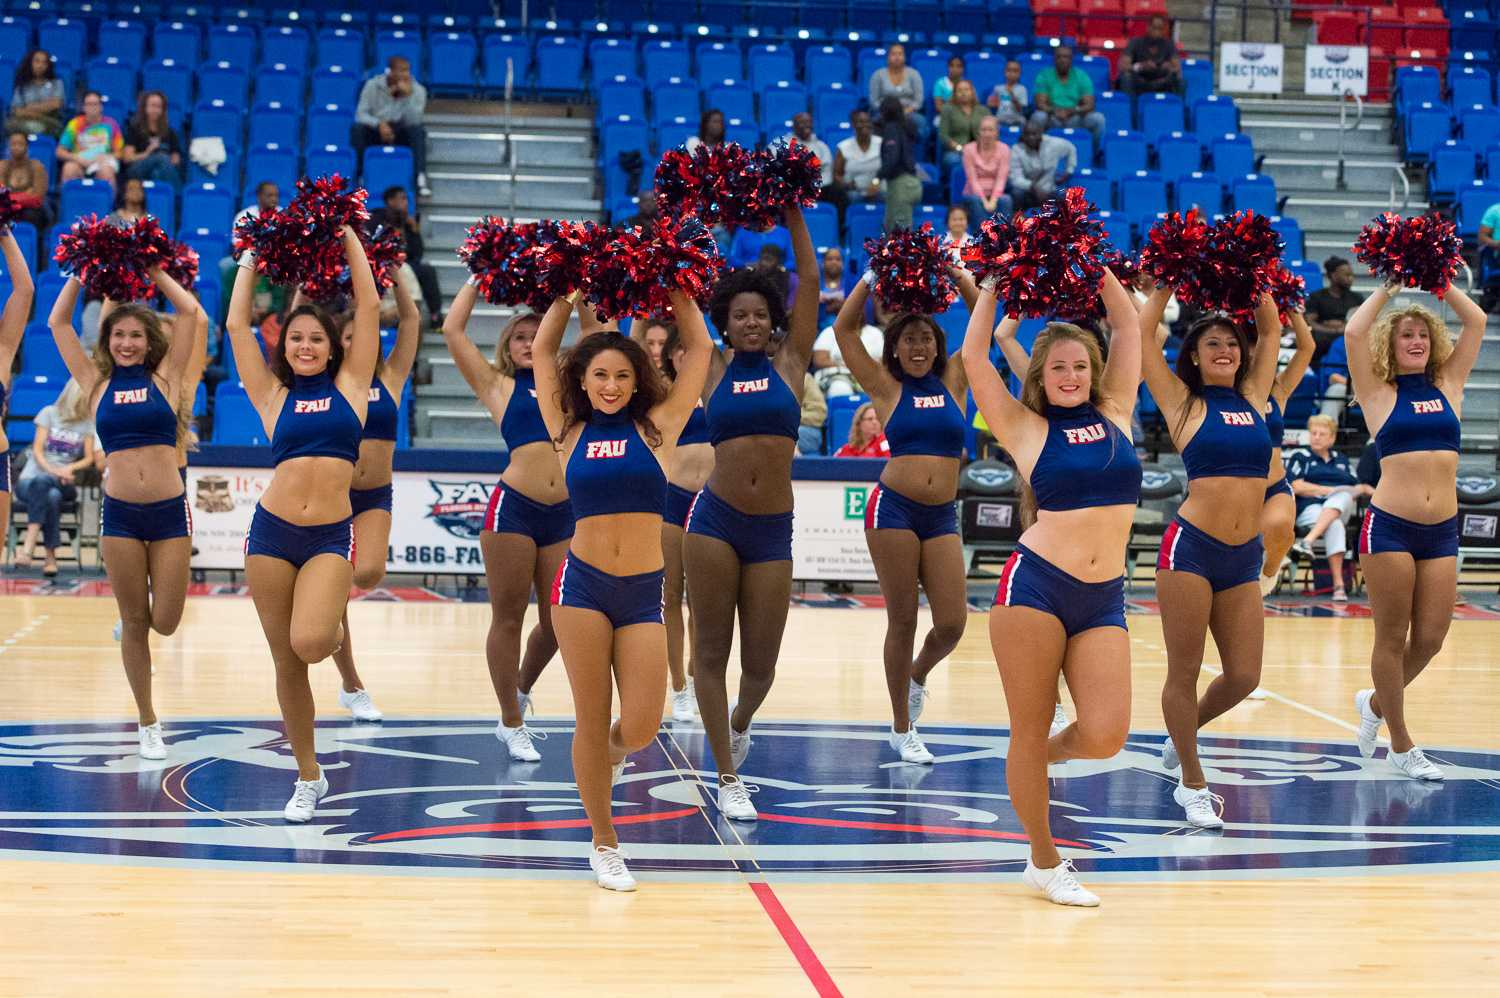 The FAU Dance Team performs at halftime of the FAU v. Lynn game on Sunday, Nov 9th.